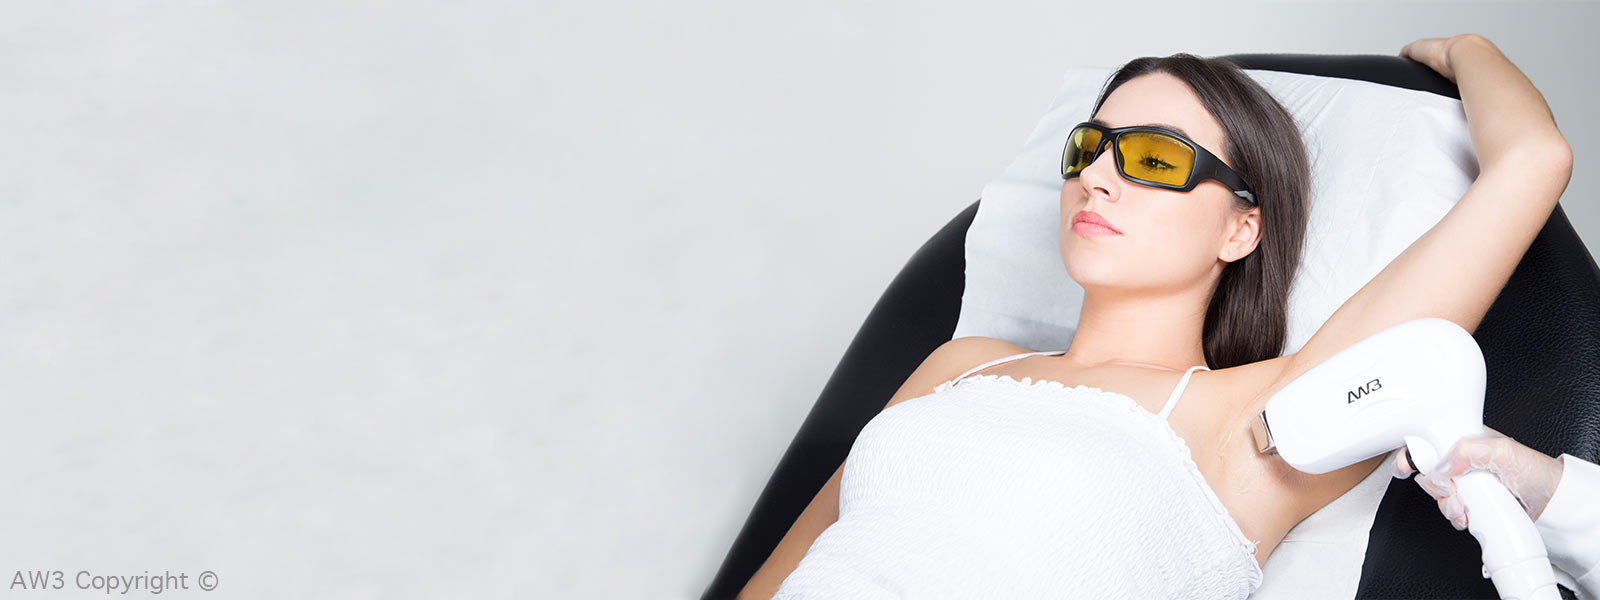 Laser Hair Removal Machine, Training and Business - Launch Video